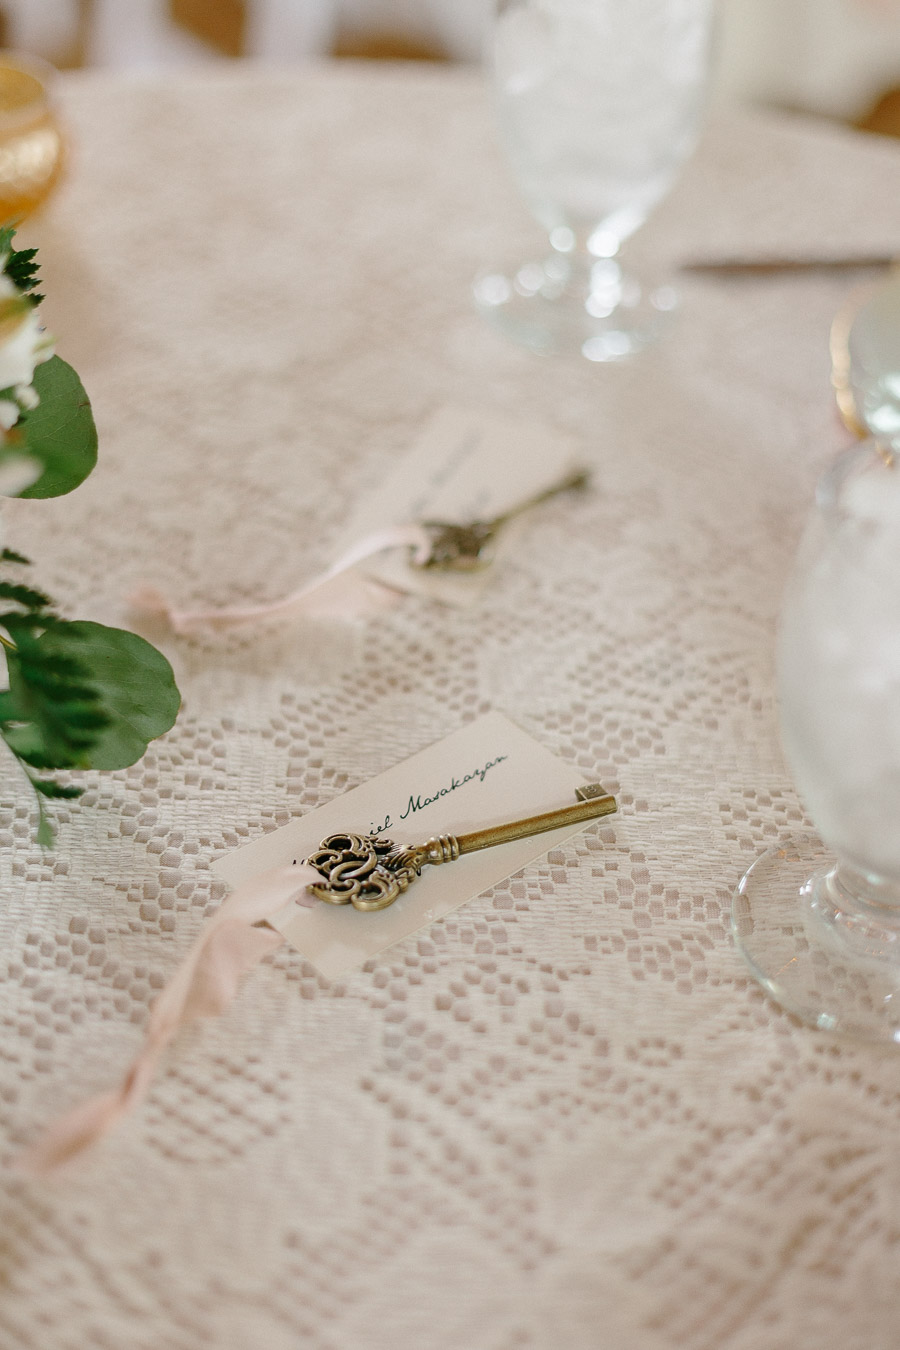 lock-and-brass-key-placecards-wedding